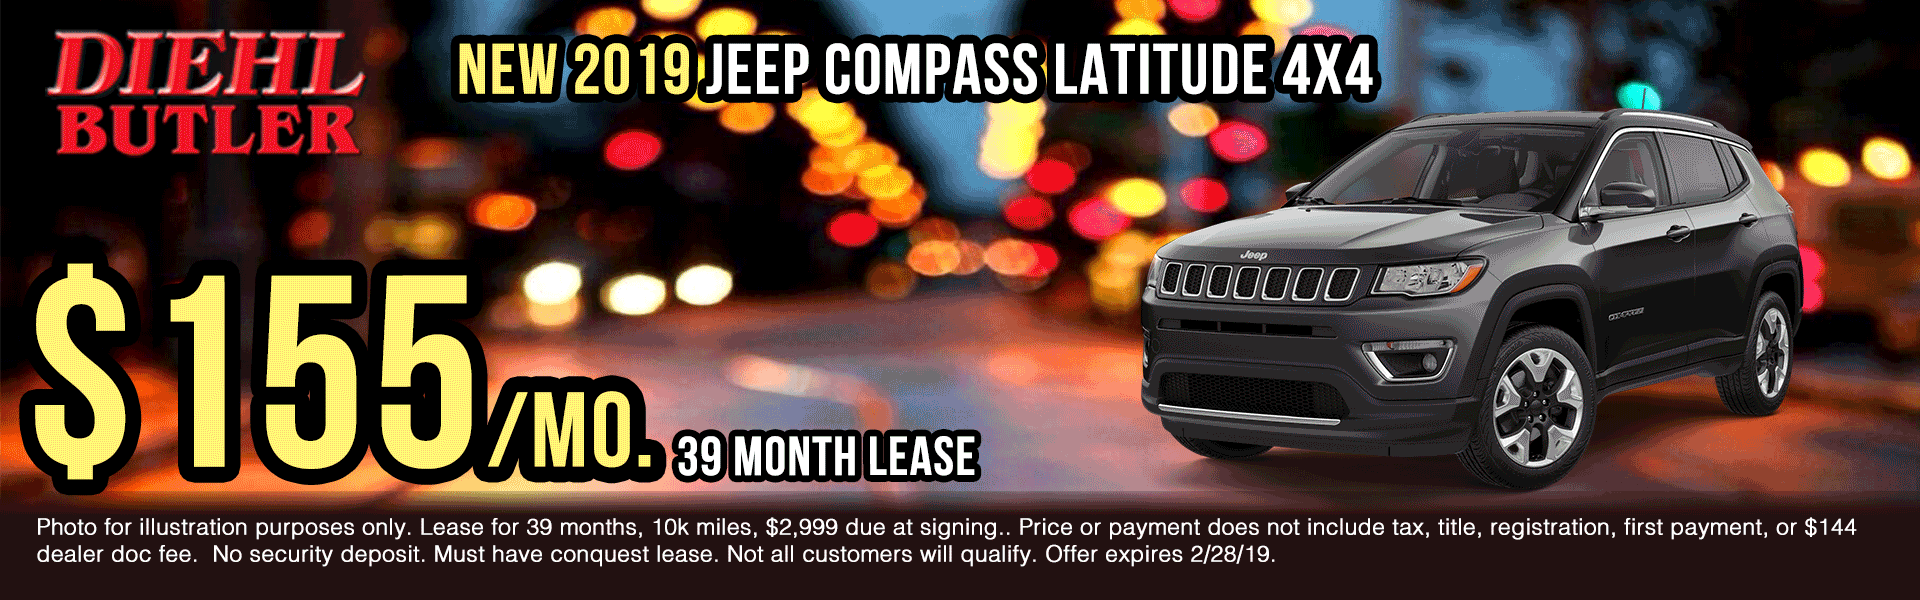 J190907-2019-jeep-compass-latitude New vehicle specials Diehl Automotive Diehl Butler Diehl of Butler specials truck specials ram specials jeep specials Chrysler specials dodge specials lease specials ram truck month presidents day sales event